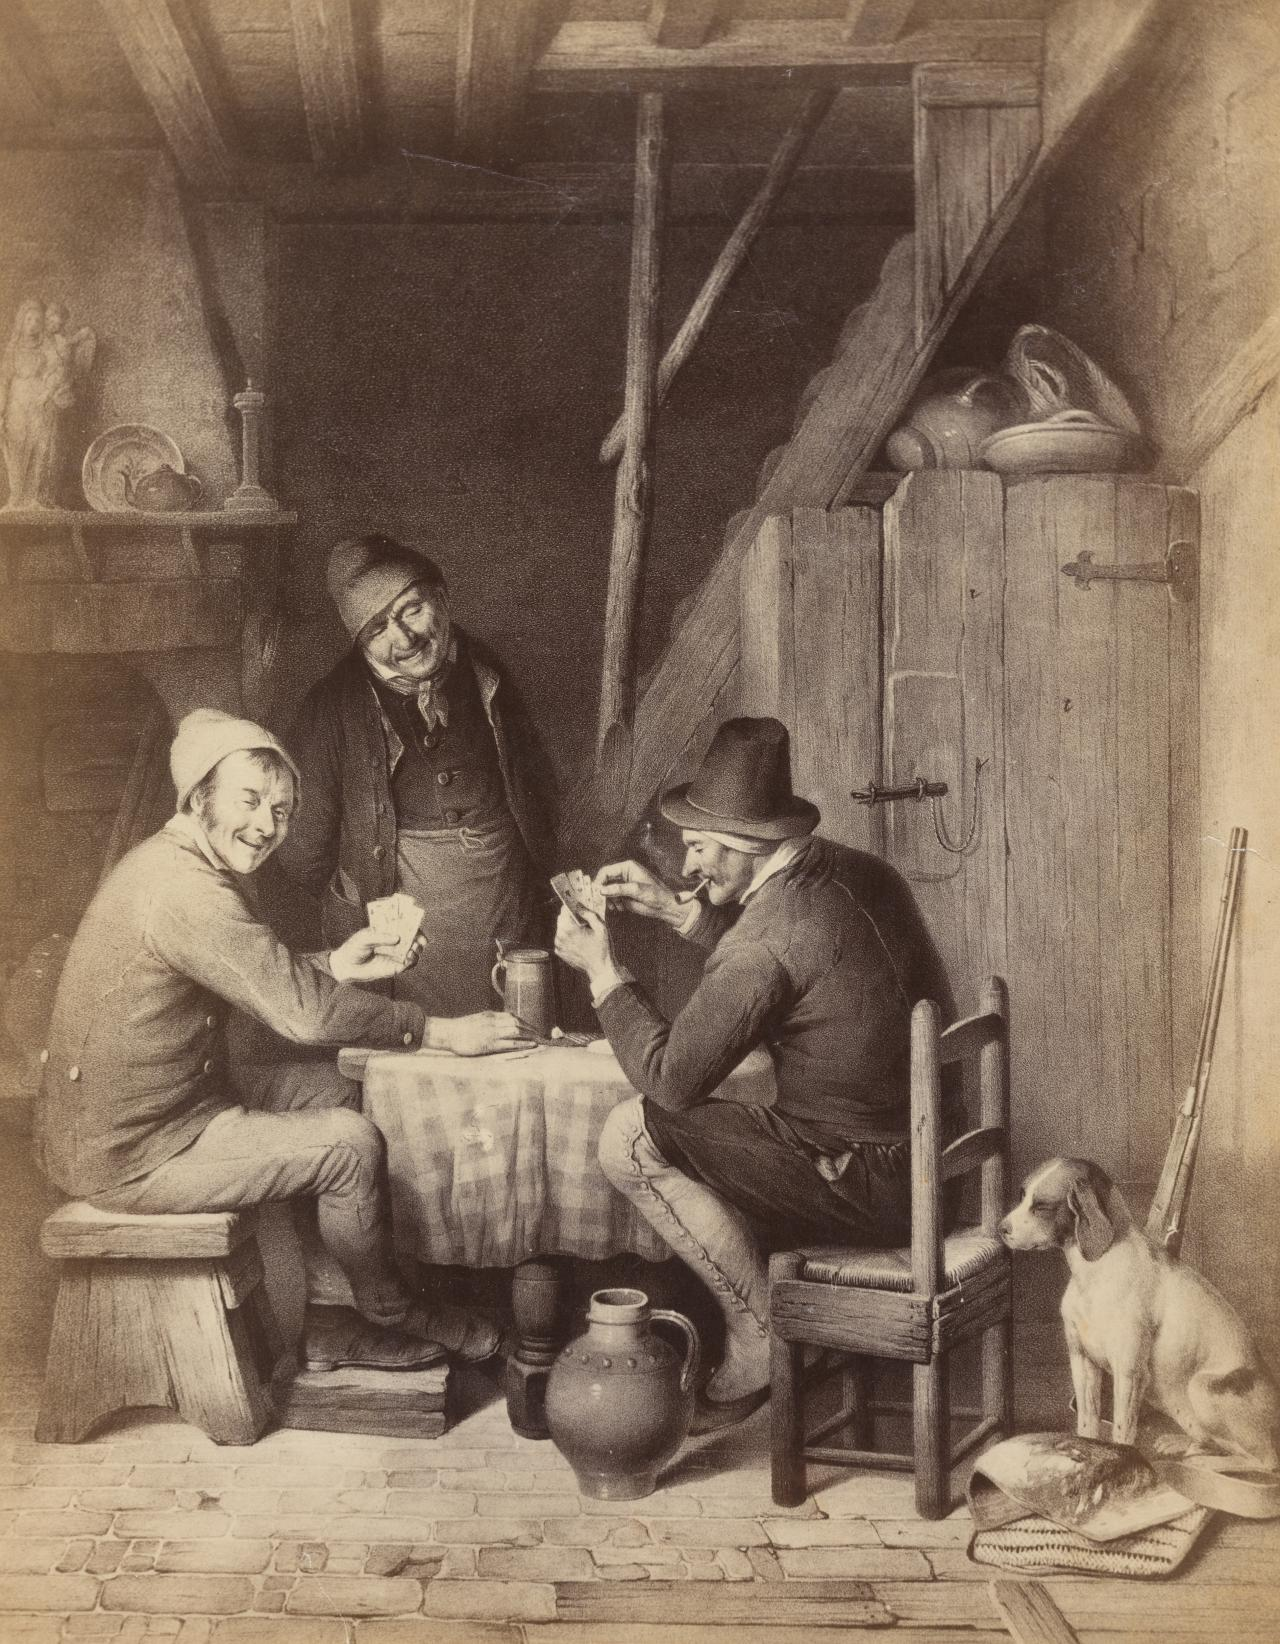 No title (Photograph after a painting of card players)